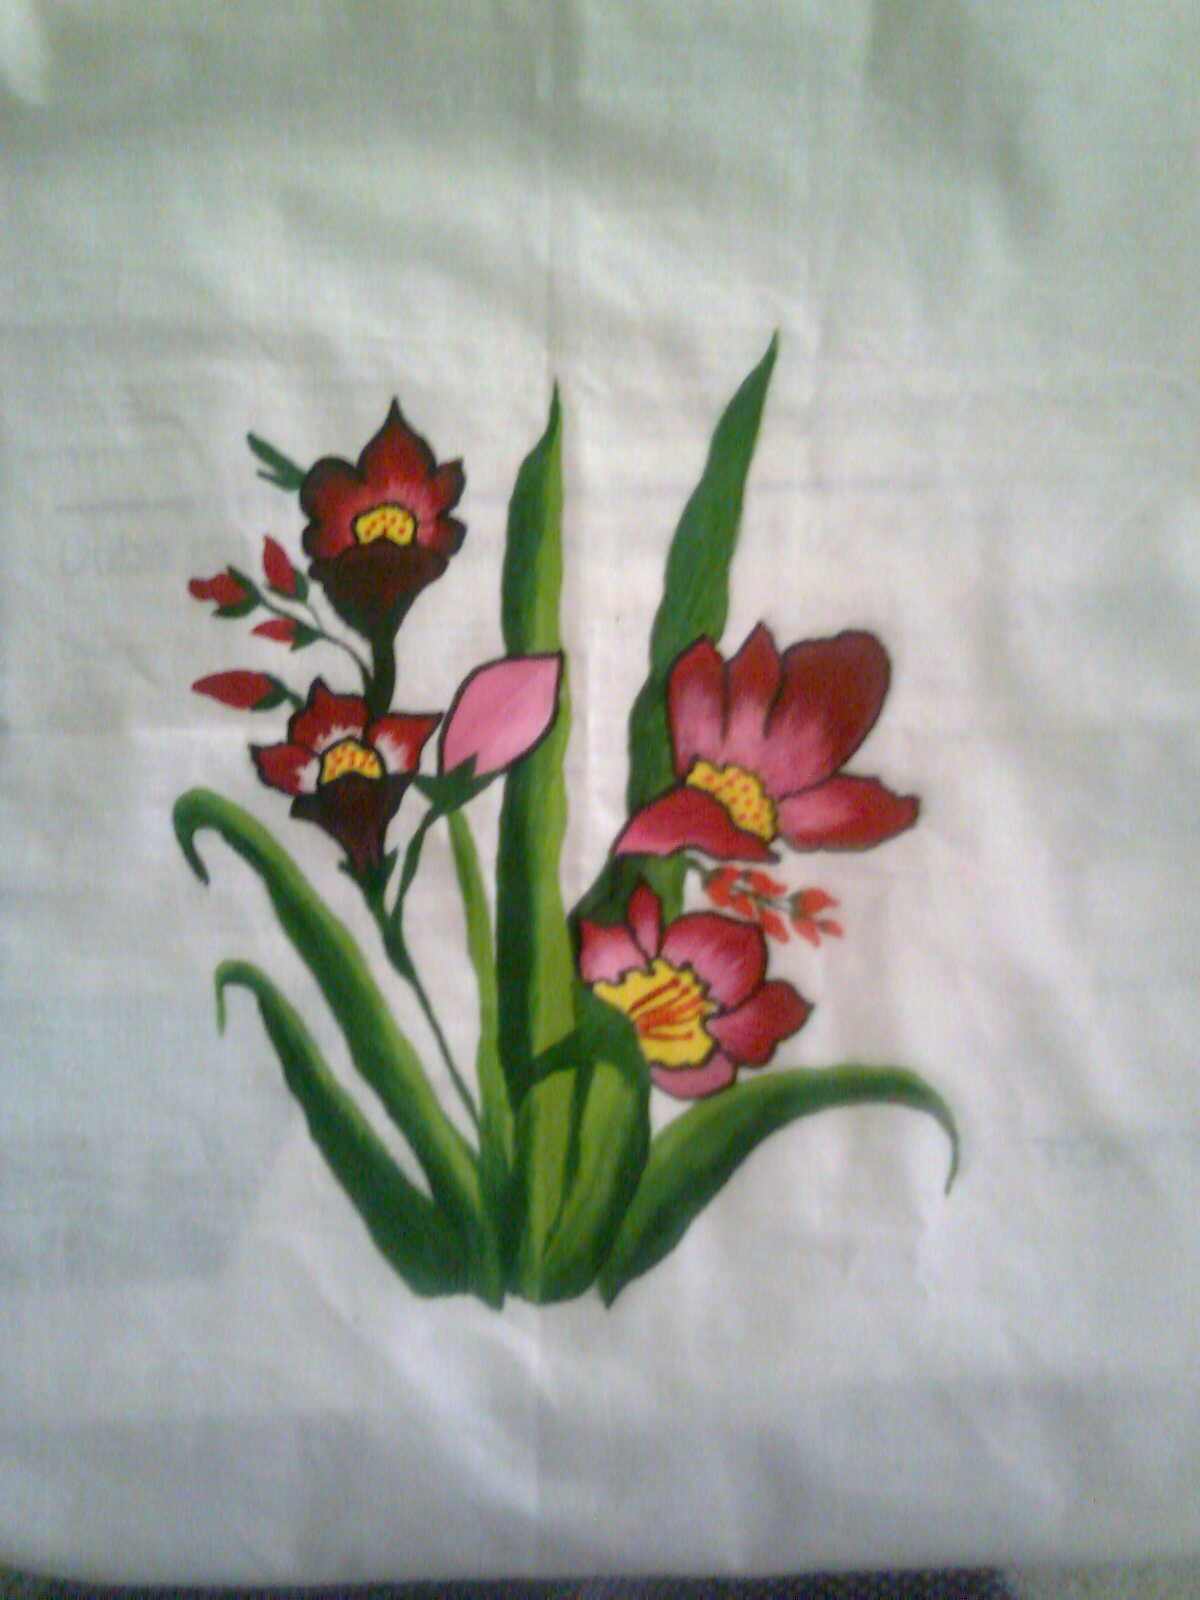 Bed sheet design for paintings - Fabric Painting Design Add Caption